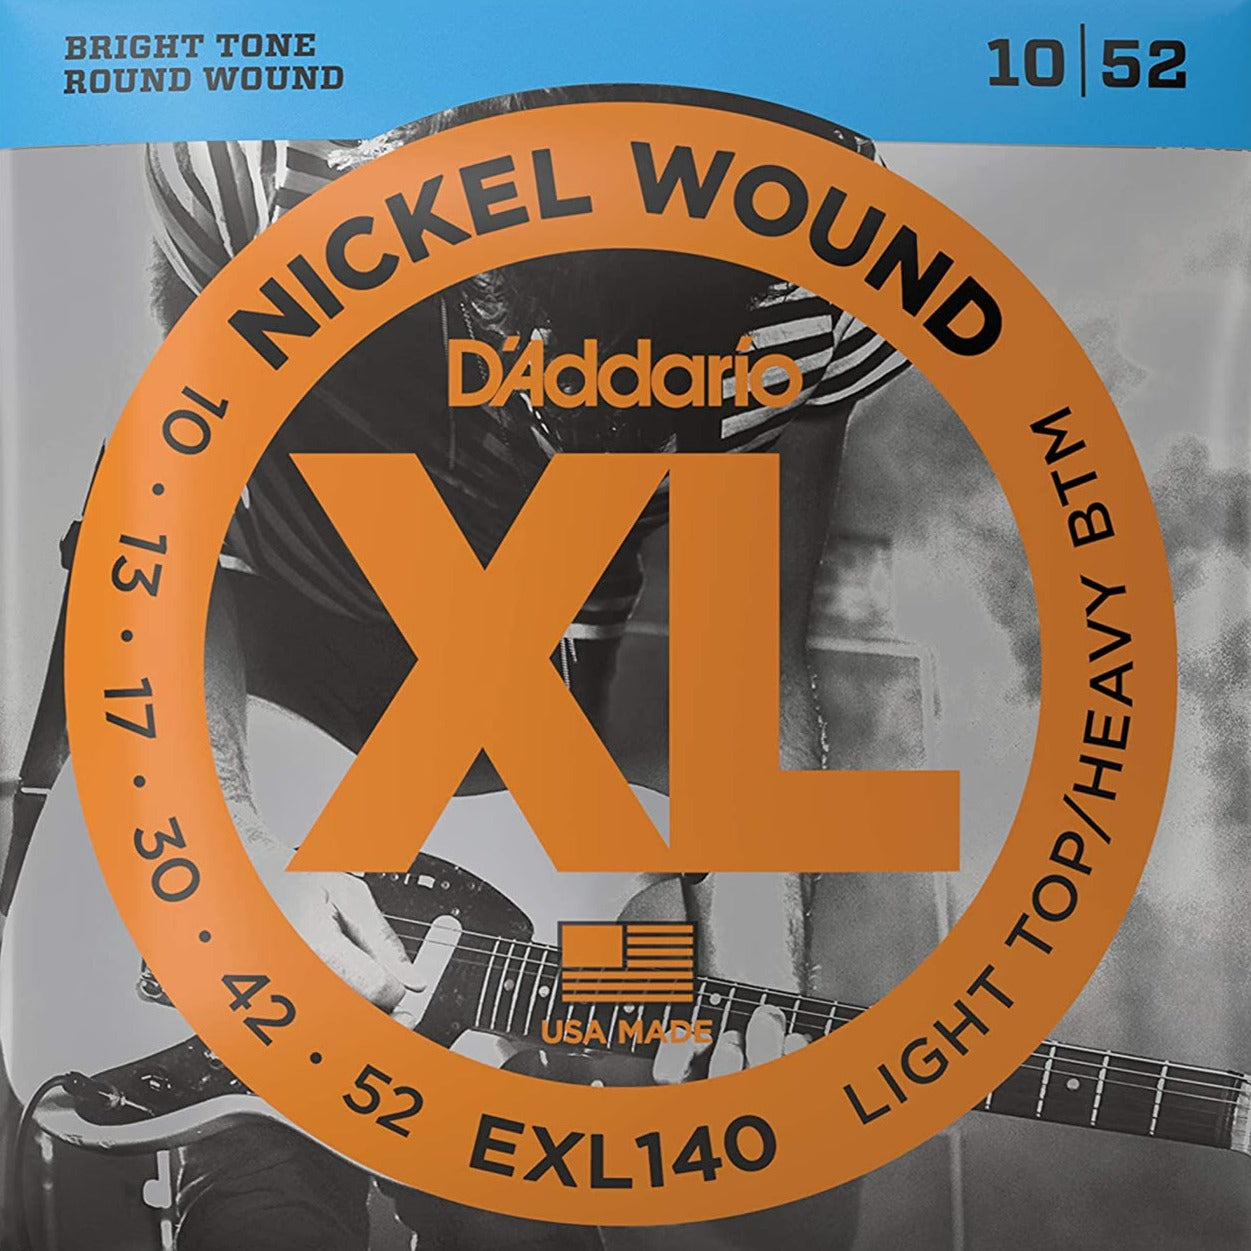 D'Addario EXL140 XL Electric Guitar Strings - Light Top/Heavy Bottom - 10-52